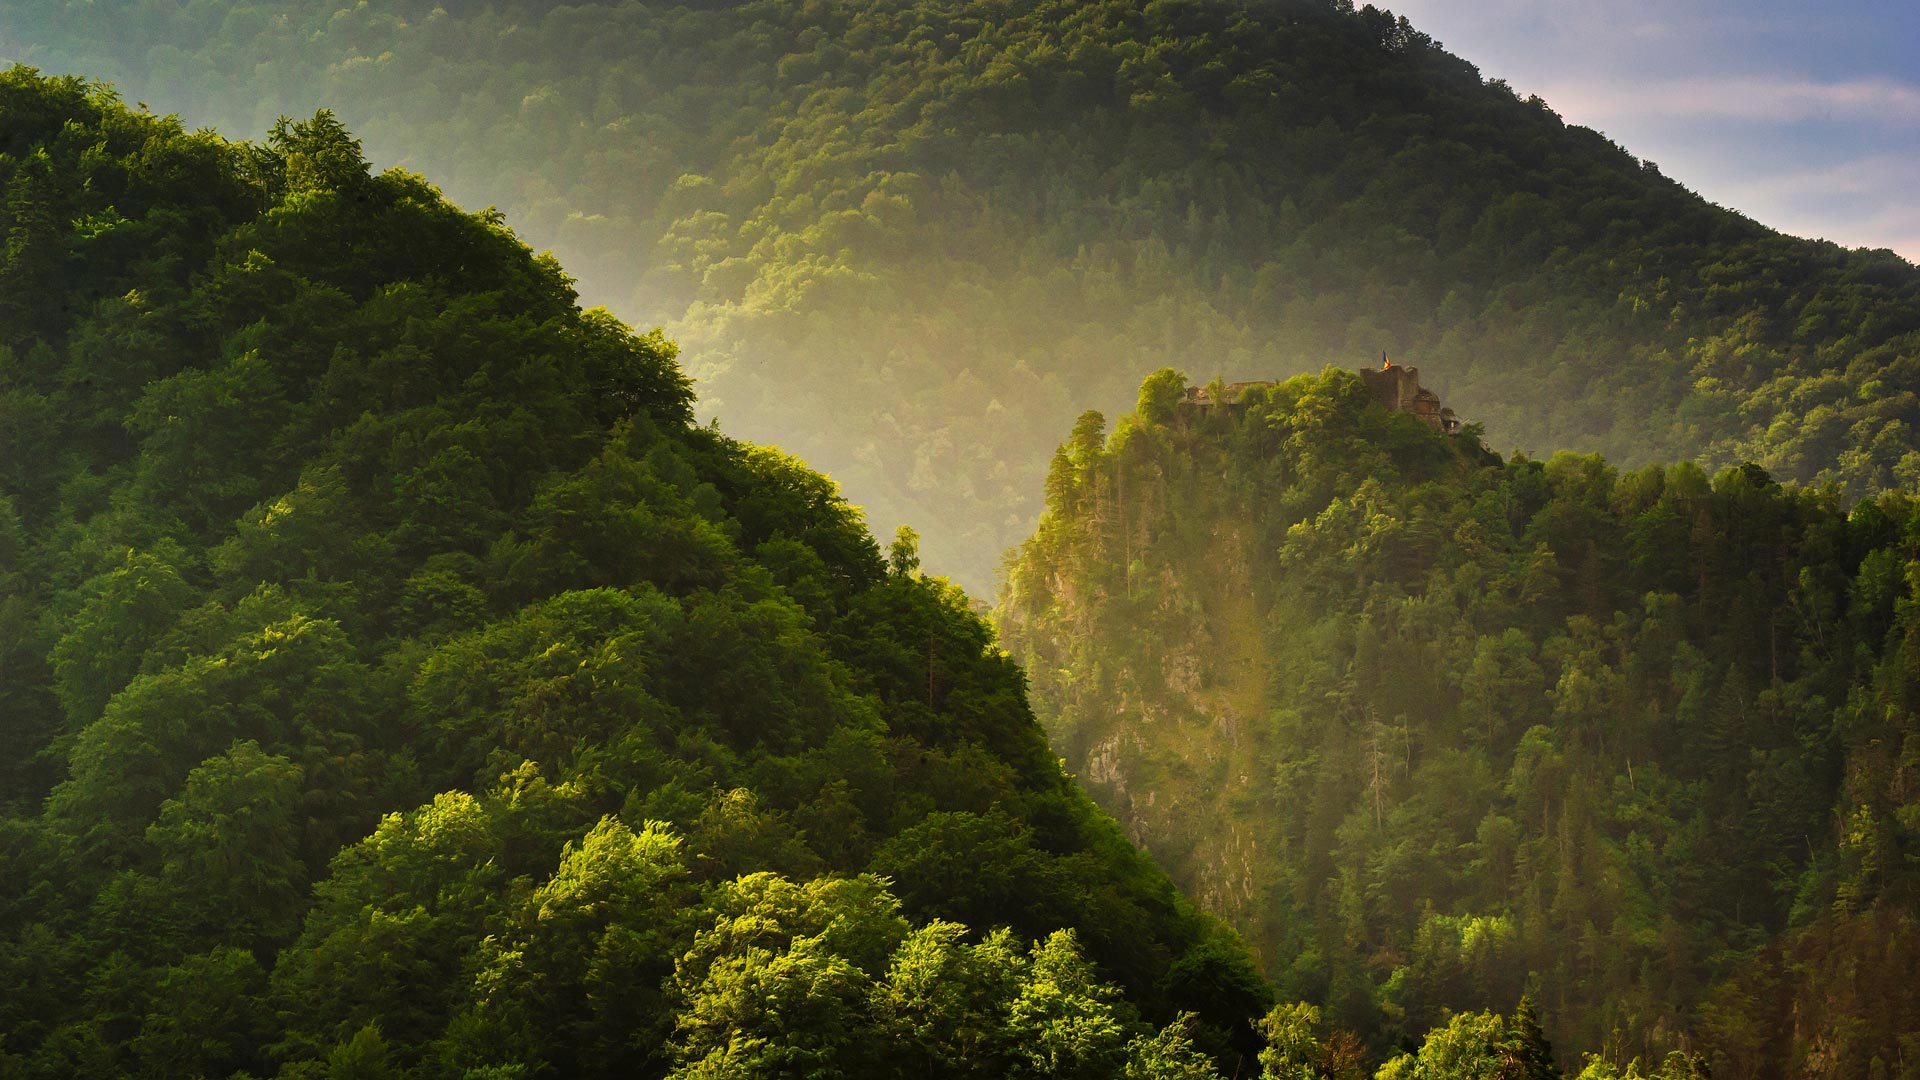 Poenari Castle in the Făgăraș Mountains of Romania (© Susanna Patras/Tandem Stills + Motion)